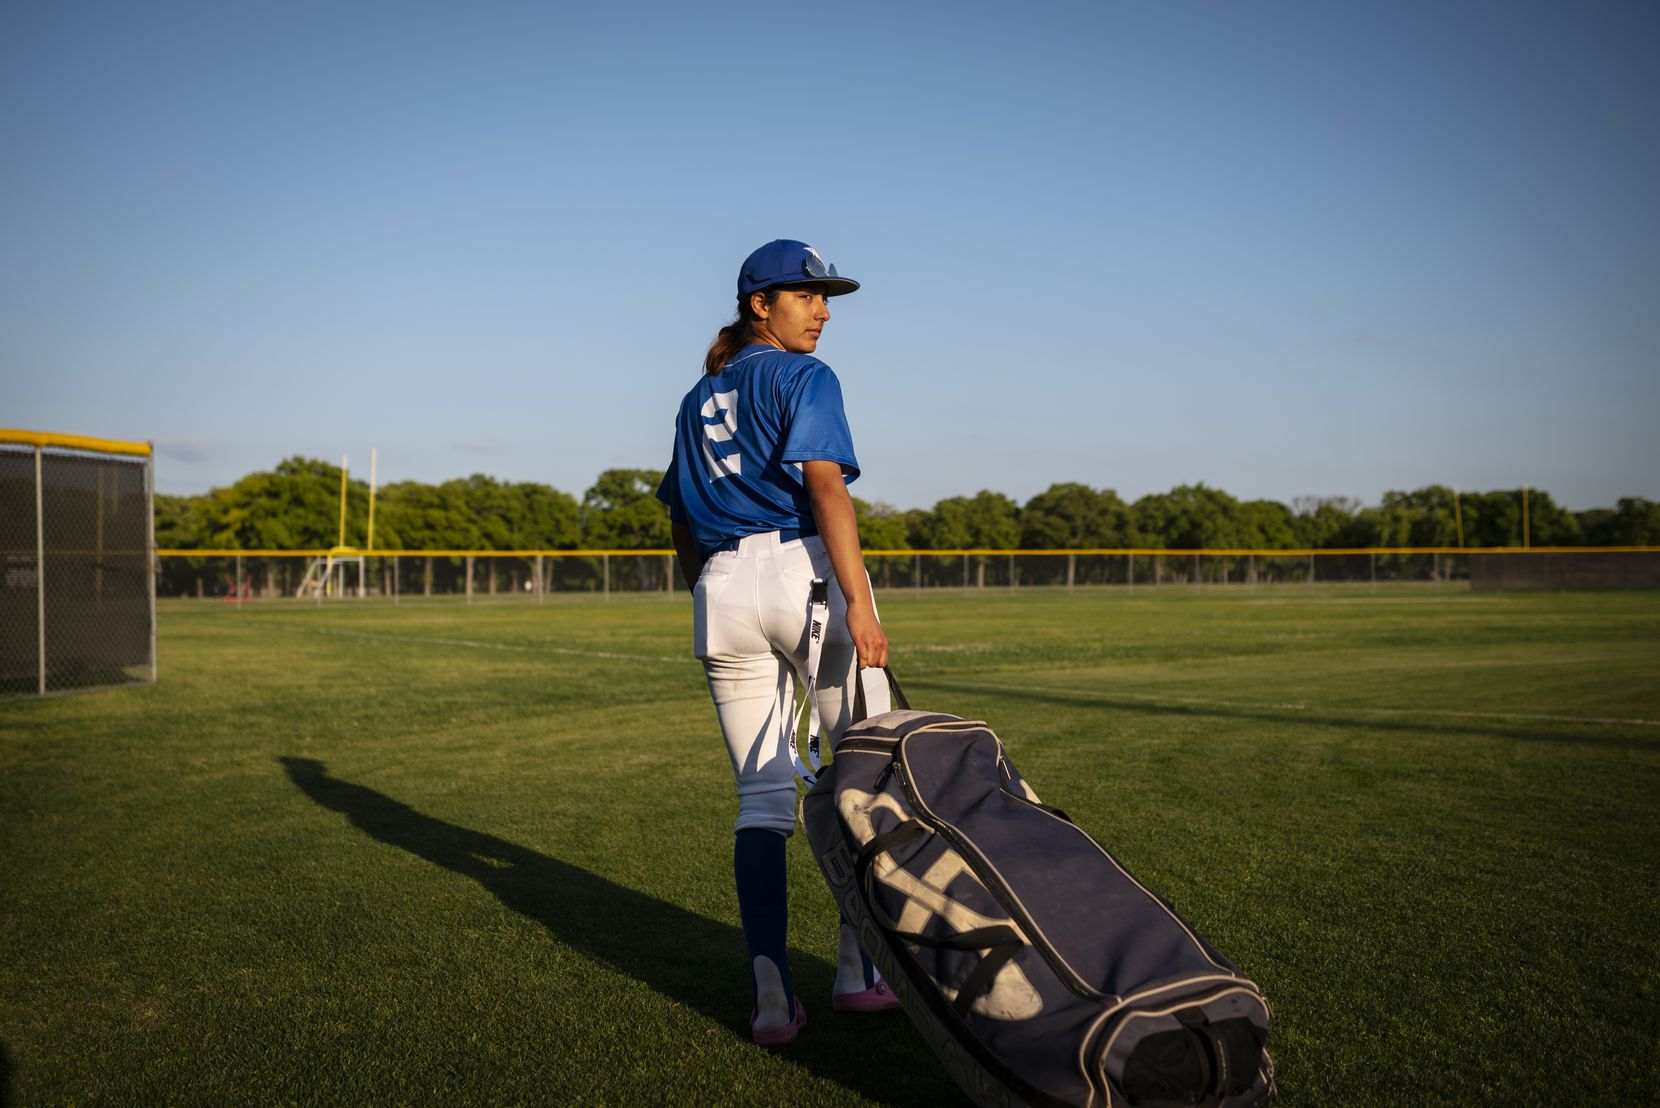 Adamson High School senior Tatyana Beltran (2), looks back as she walks off the field saying goodbye to her coach and teammates after Adamson defeated Spruce High School 16 to 5, on Tuesday, April 20, 2021 at Spruce High School in Dallas. Beltran, 18, has been playing baseball since the age of 9; some of her current teammates grew-up with her playing baseball. Beltran pitches, plays in-field at third base, catches, and isn't afraid to get hit by a pitch for she was hit twice on Tuesday without attempting to dodge the ball.